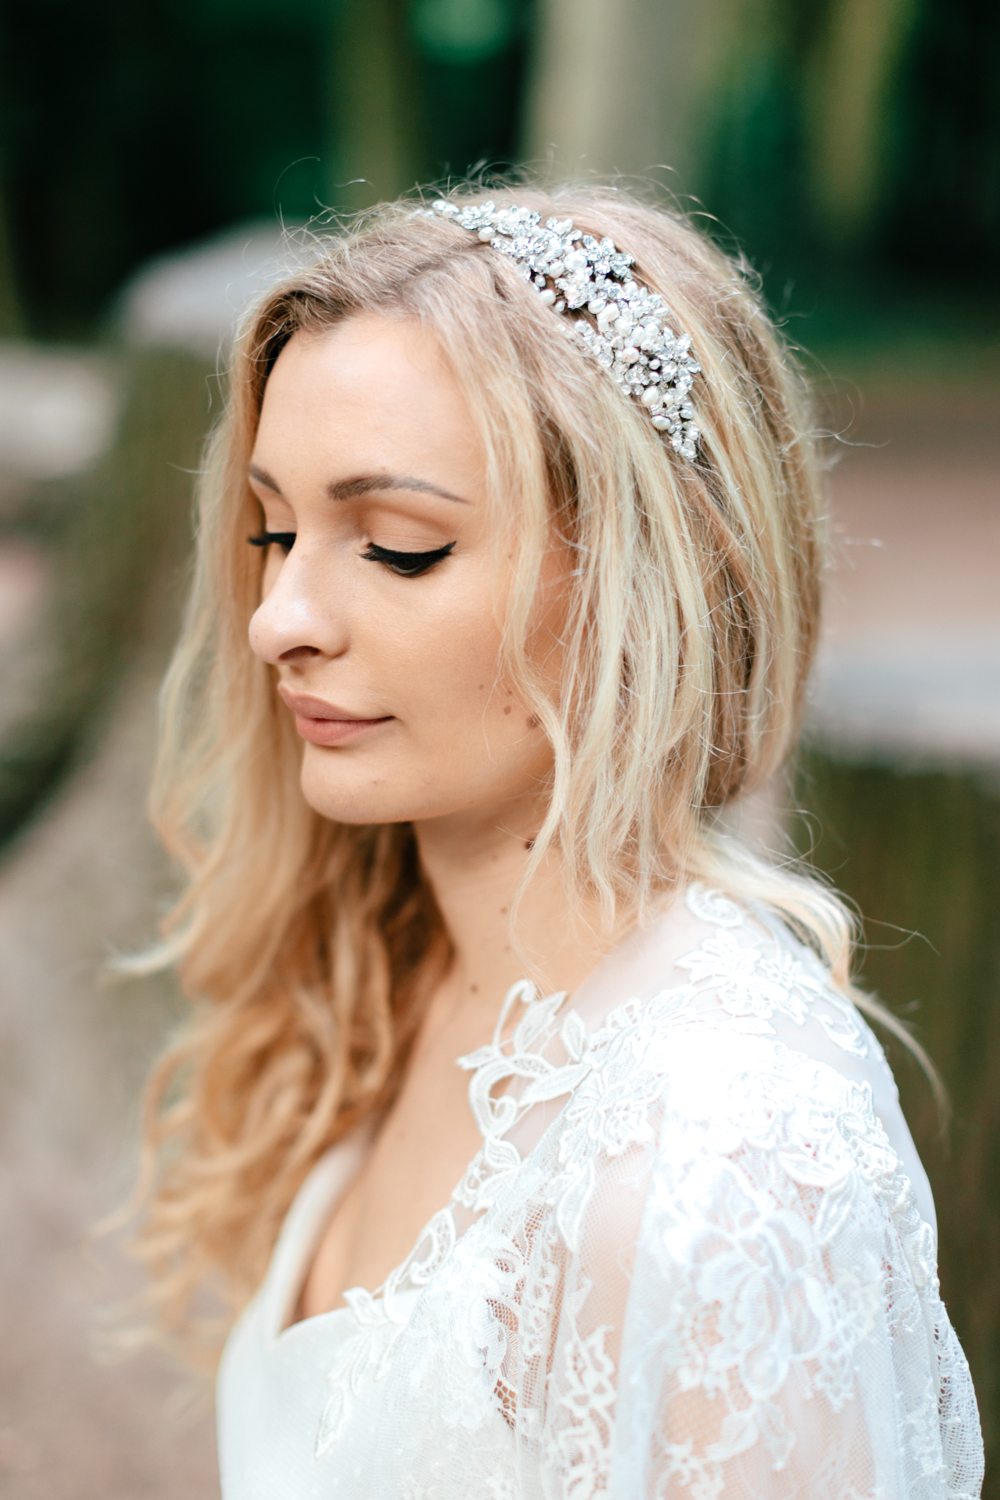 hannahk-photography-bohemian-bridal-inspiration-shoot-8